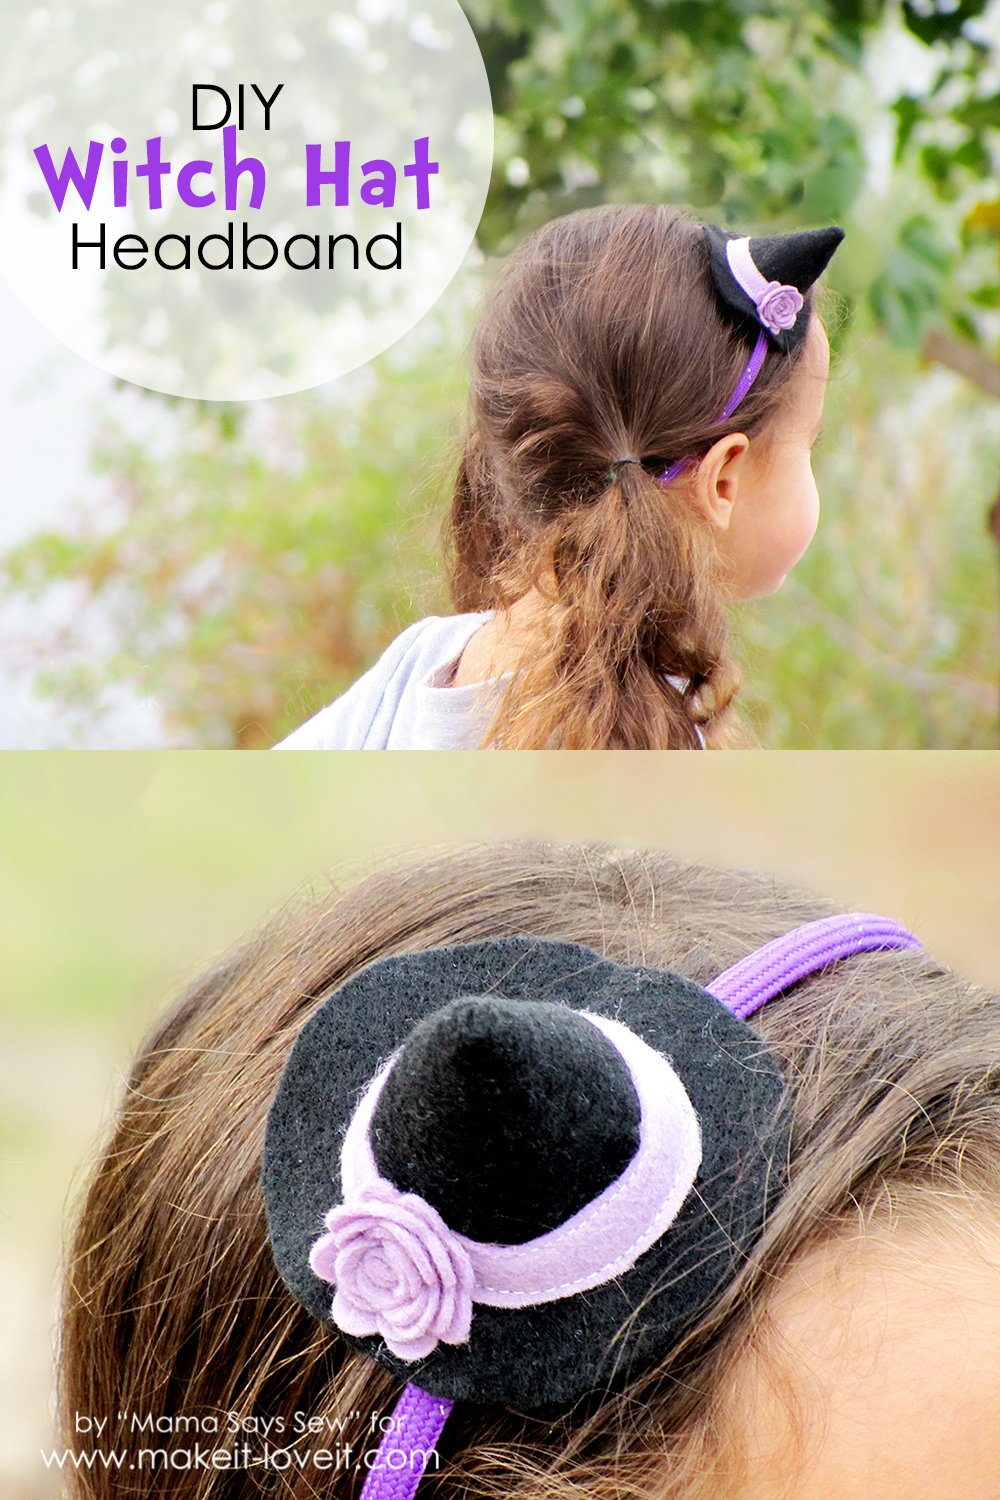 Diy mini witch hat headband…a great last minute accessory!